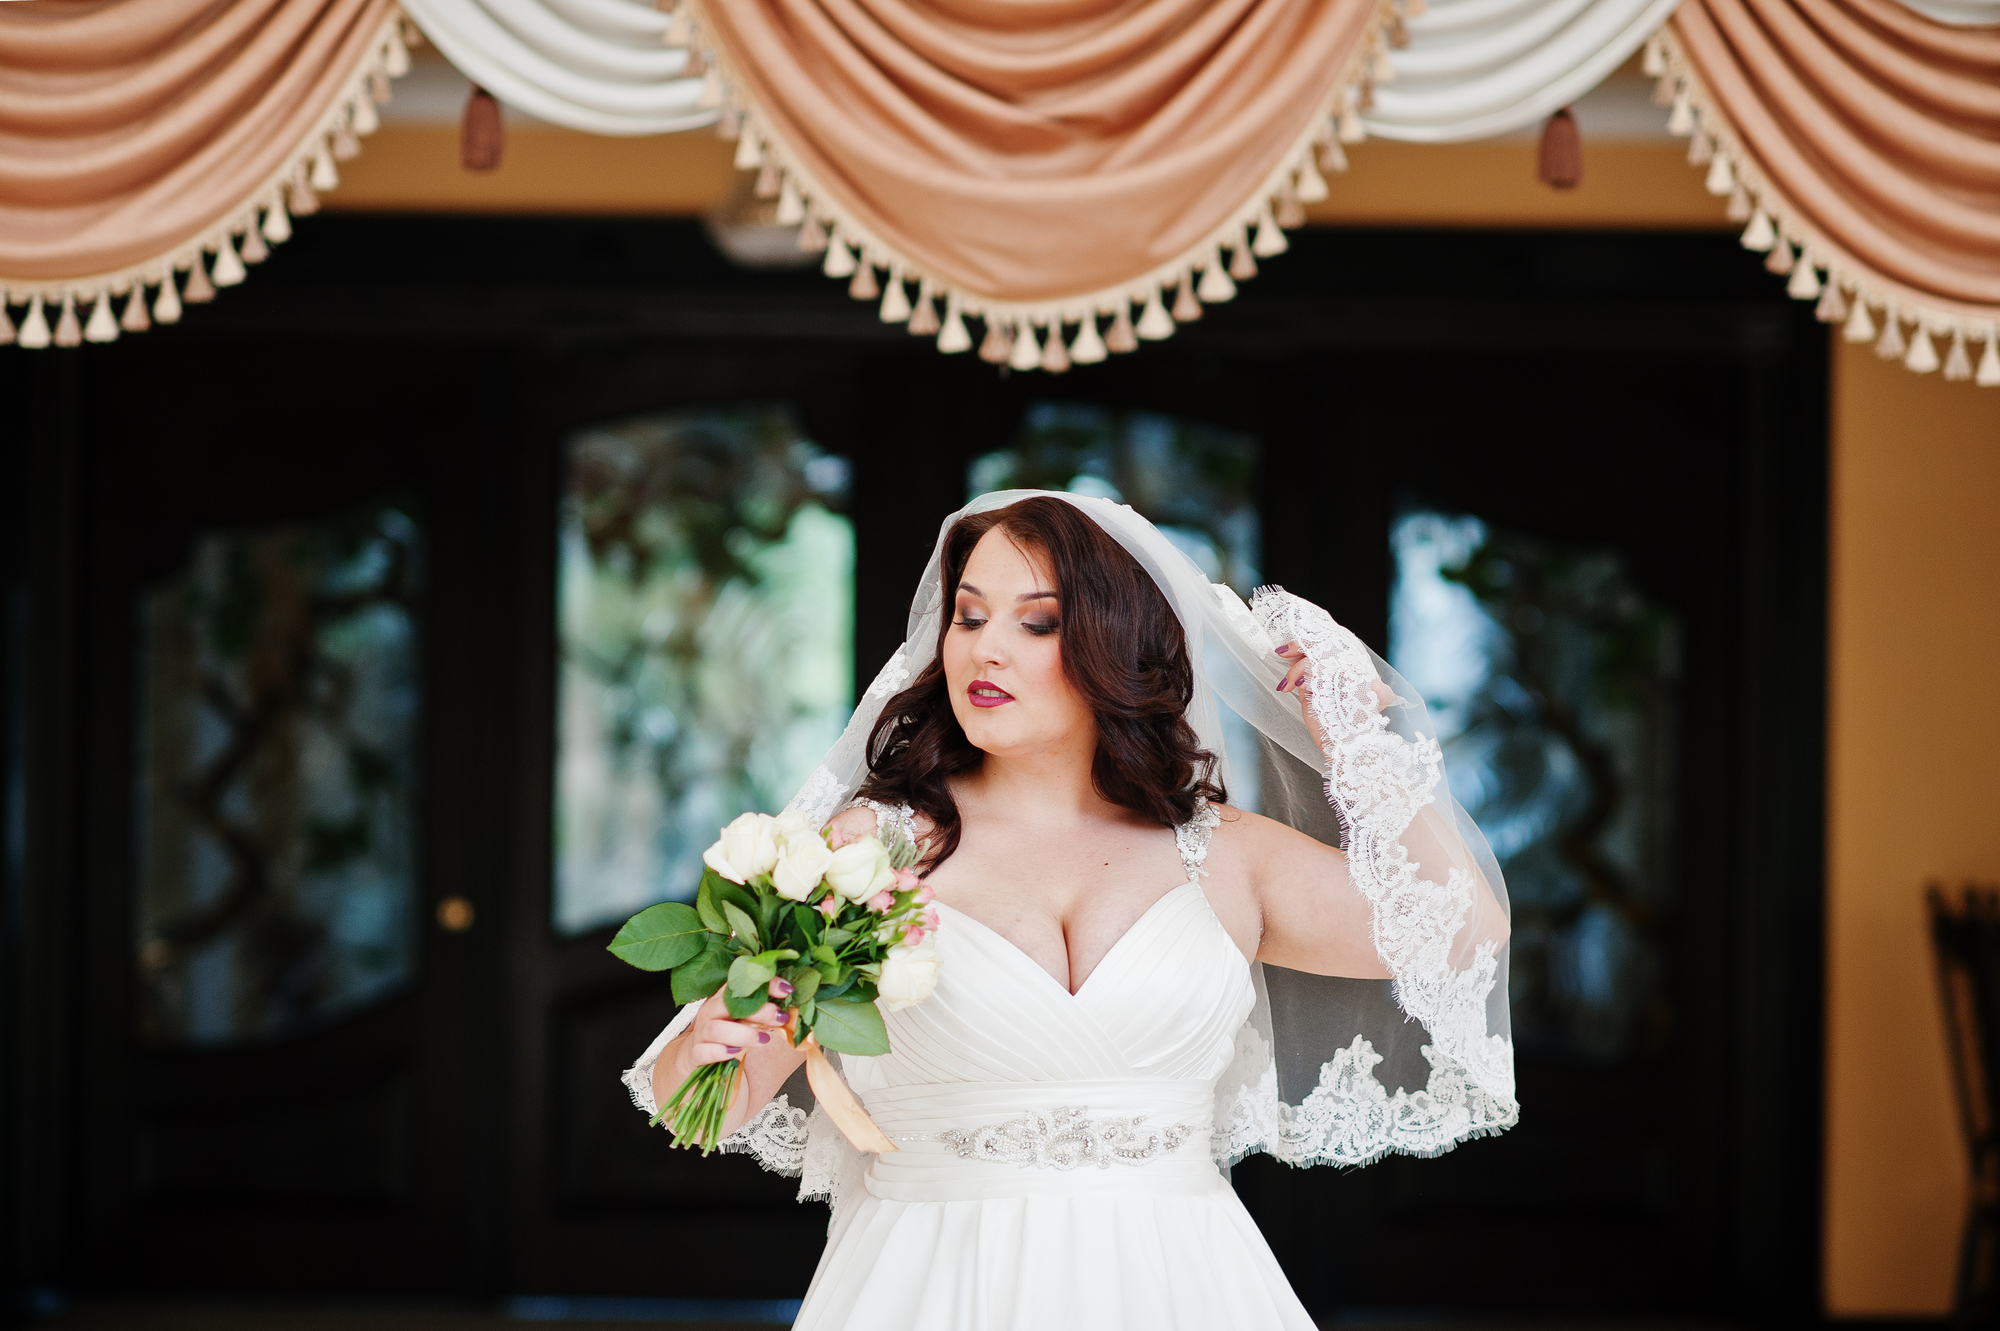 Helpful Information to Share With Your Bridal Consultant